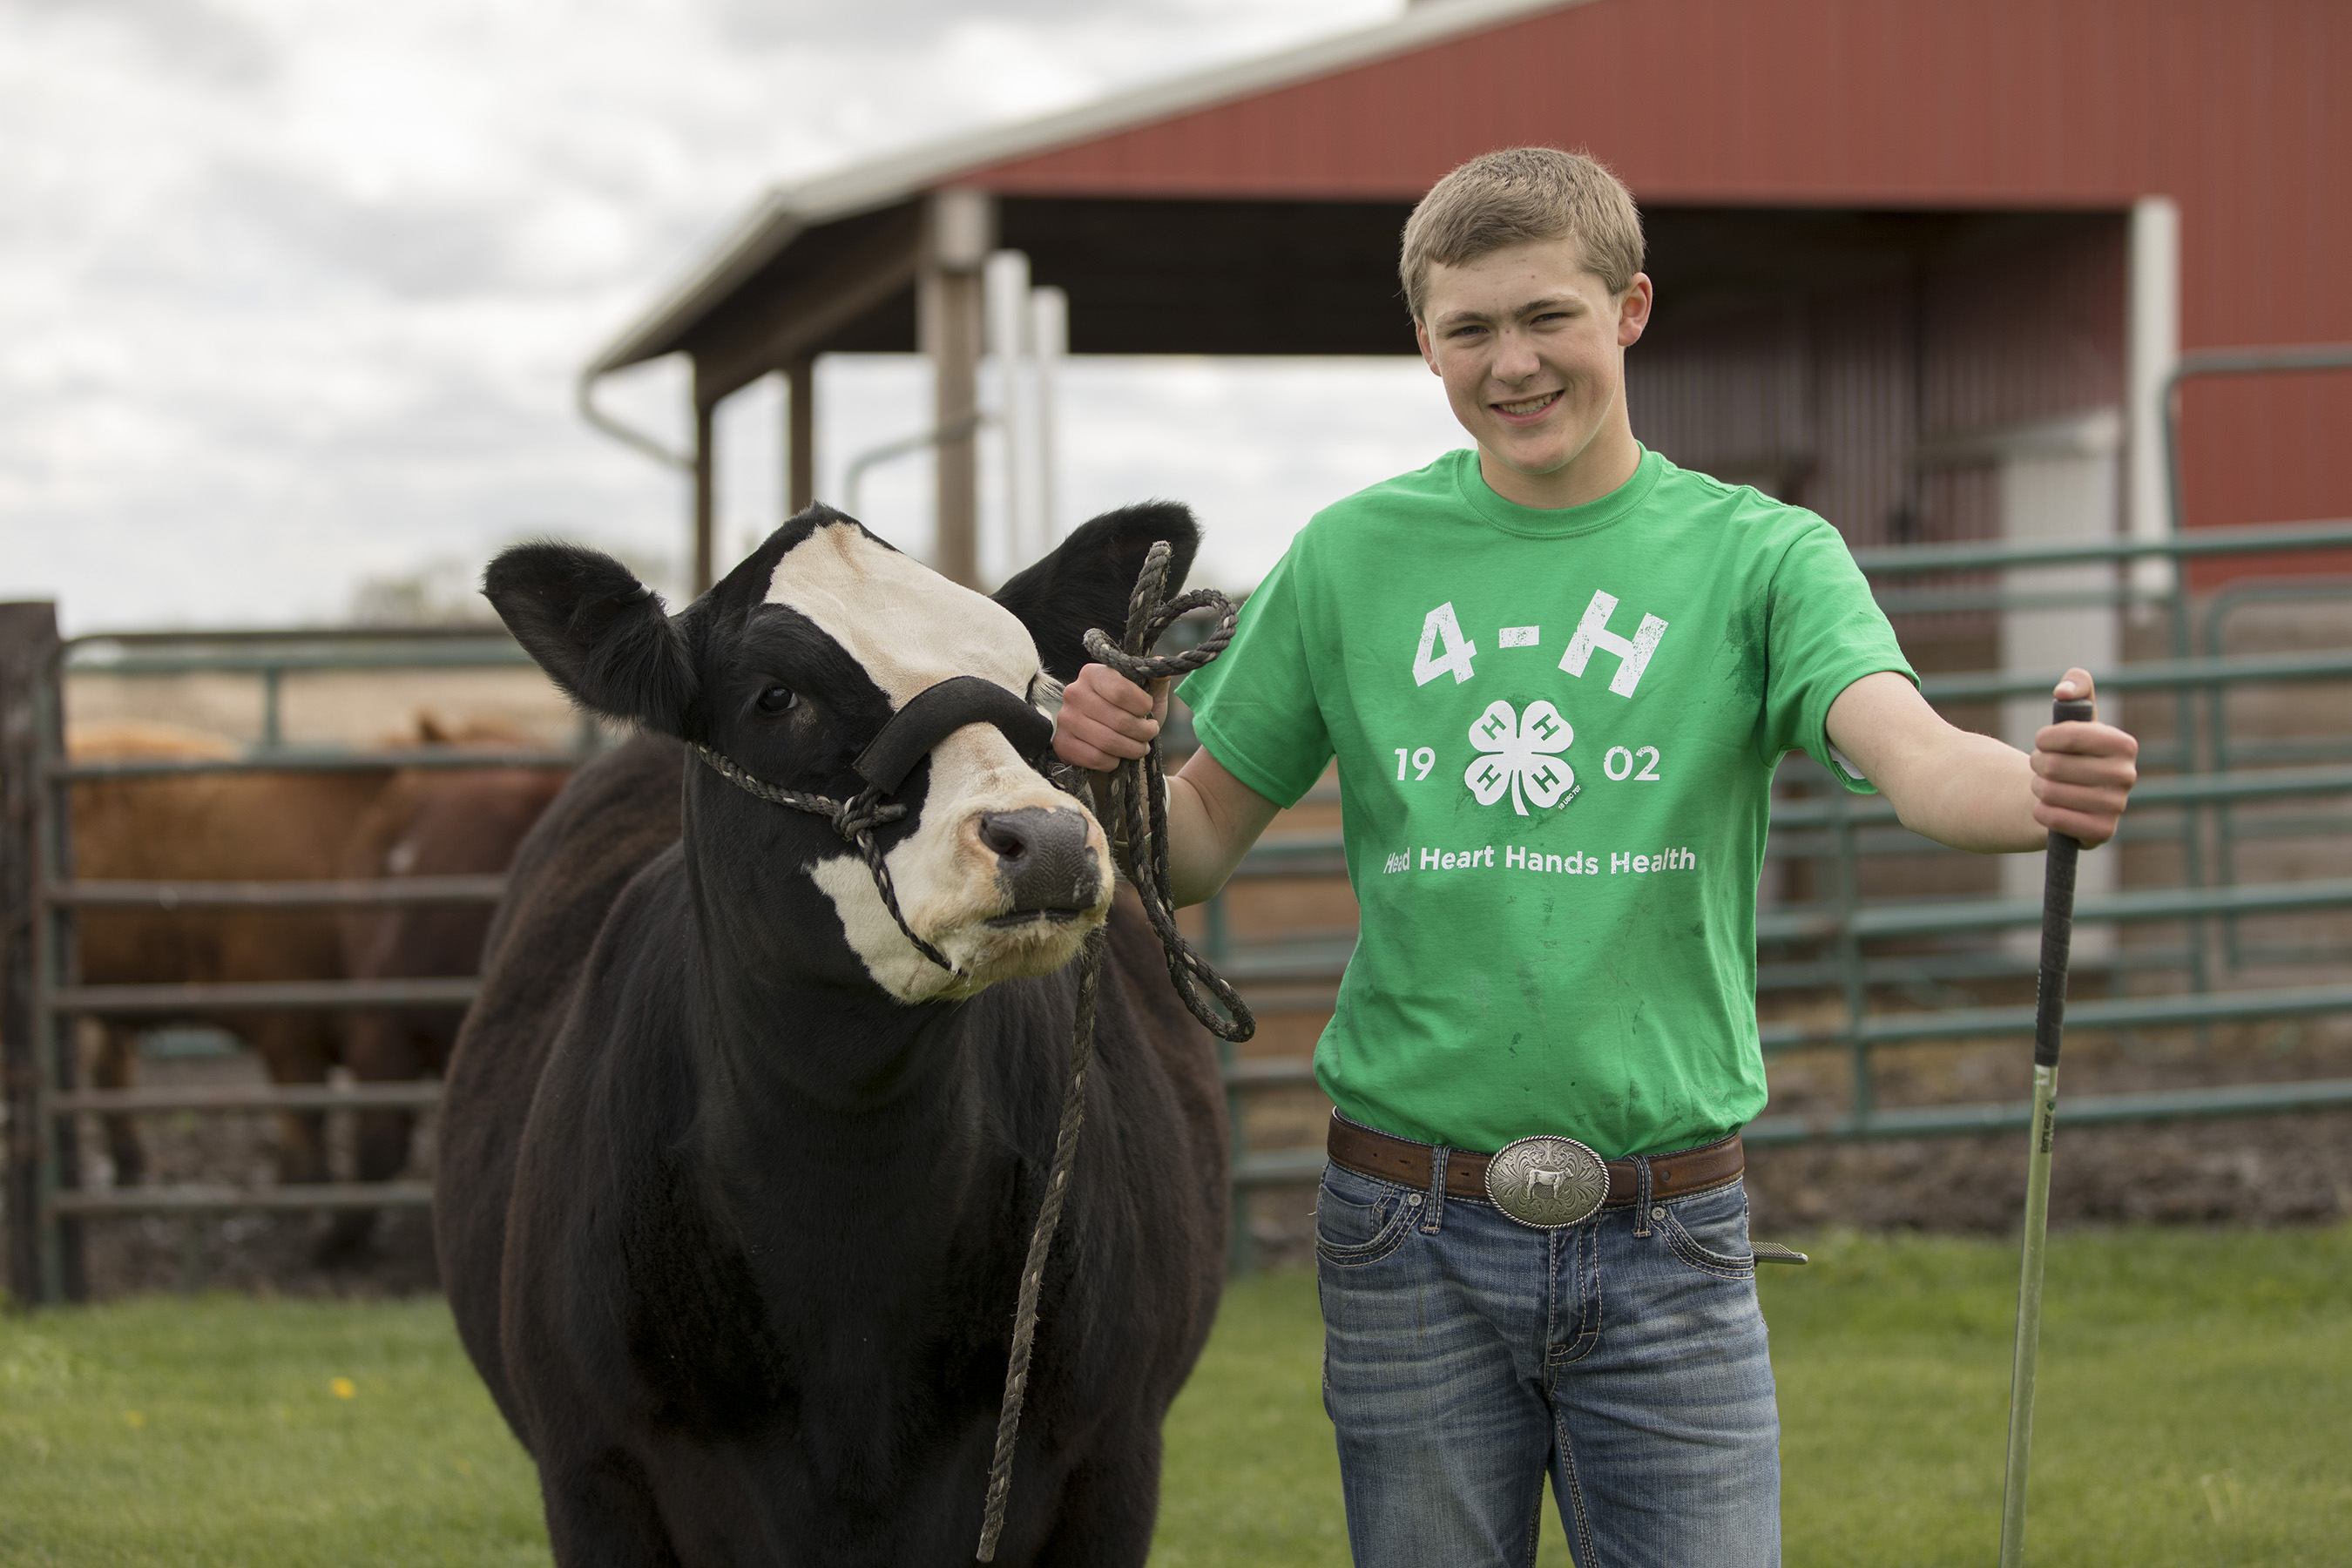 Bayer's new collaboration with 4-H will support science, education and the next generation of agriculture.